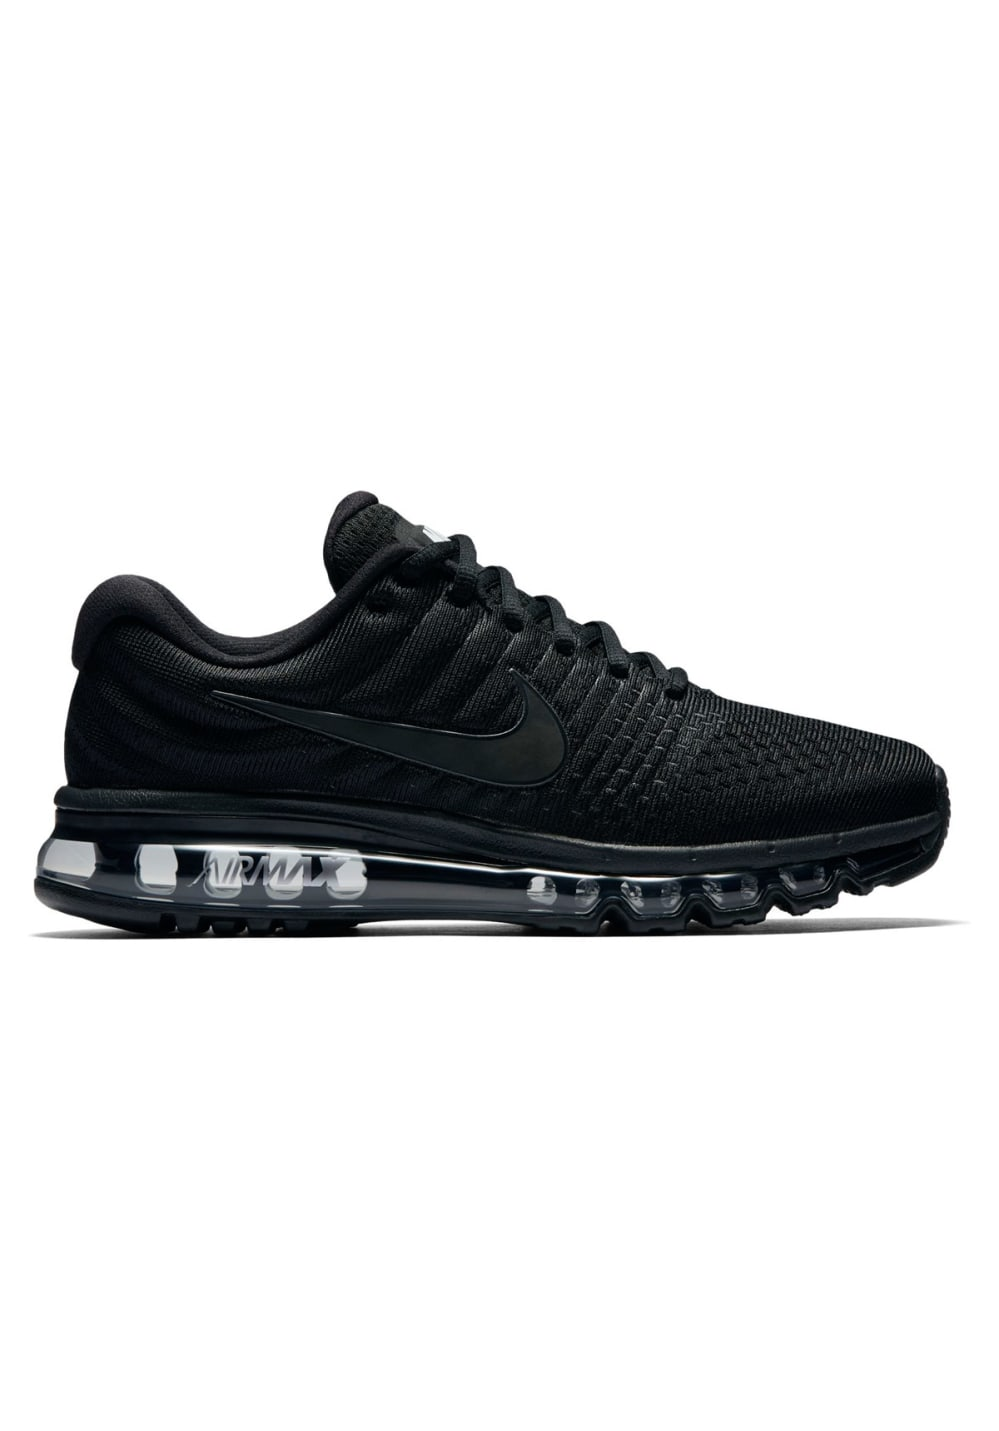 new arrival 1289a 0fe97 Nike Air Max 2017 - Running shoes for Men - Black